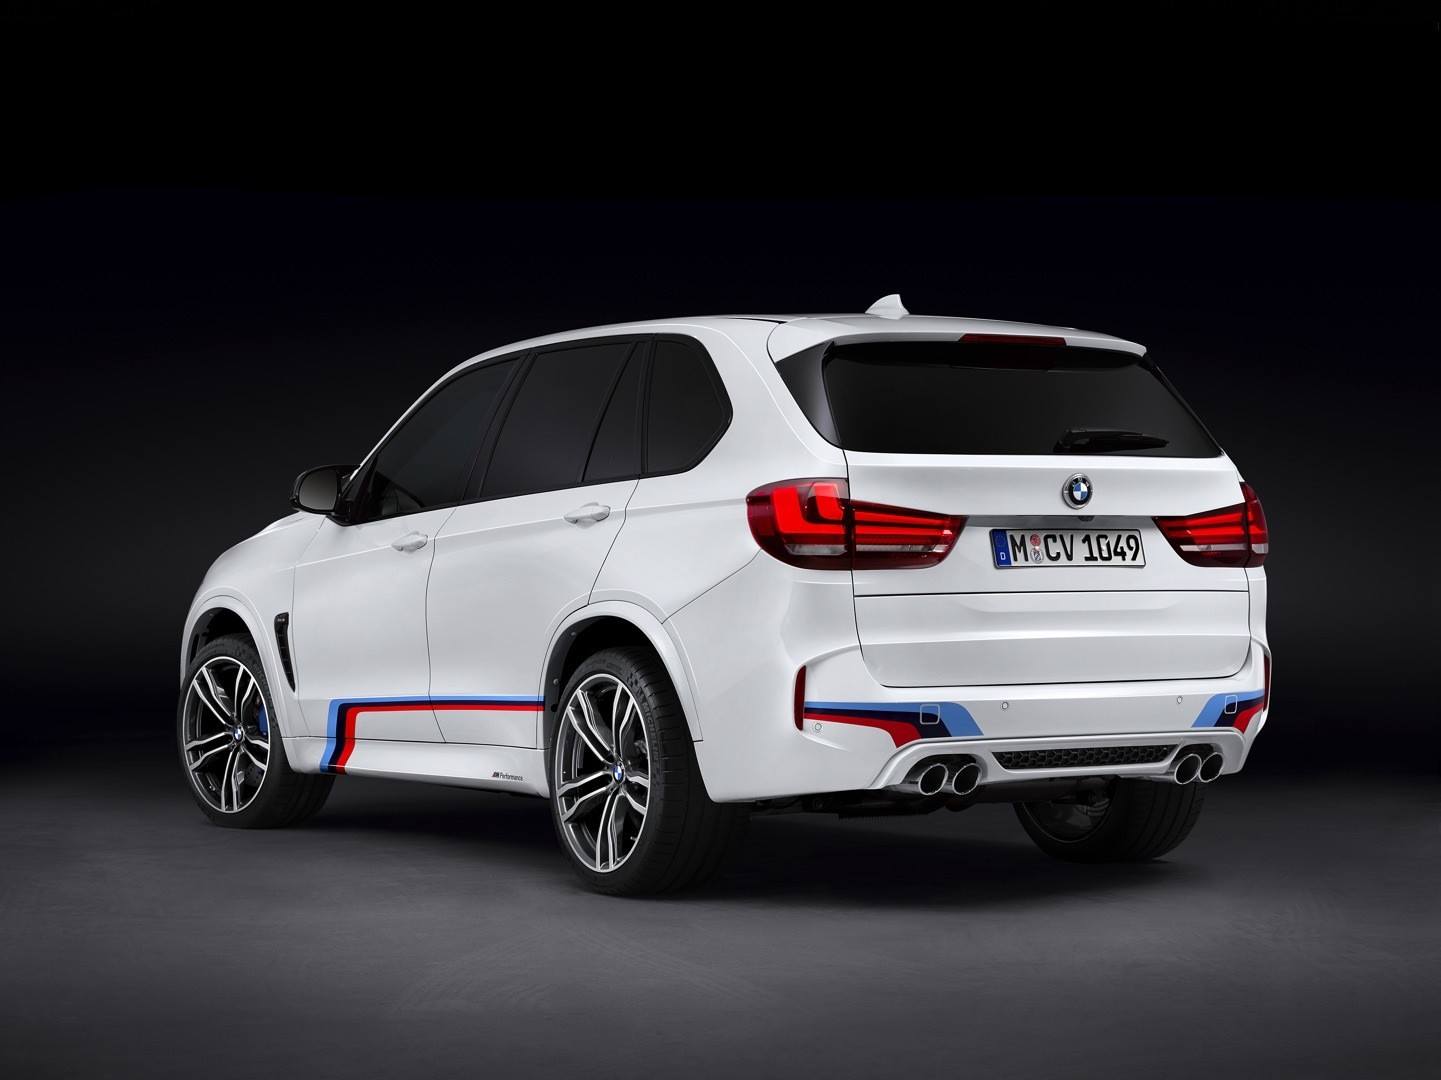 Meisterschaft's GTC Exhaust for the 2015 BMW X5 M Brings 12 Extra